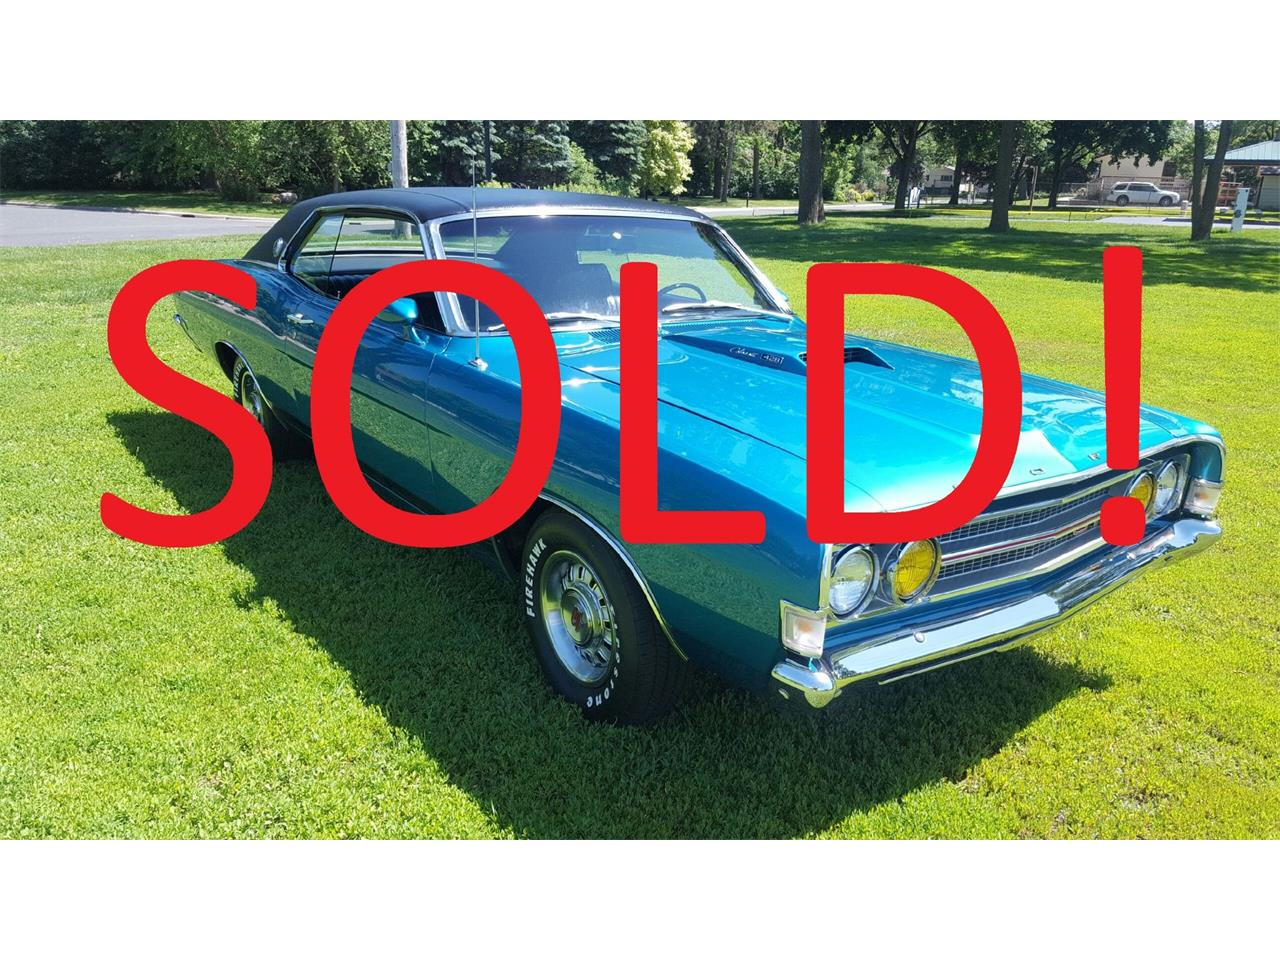 Large Picture of Classic '69 Torino located in Minnesota Auction Vehicle Offered by Classic Rides and Rods - L8I4